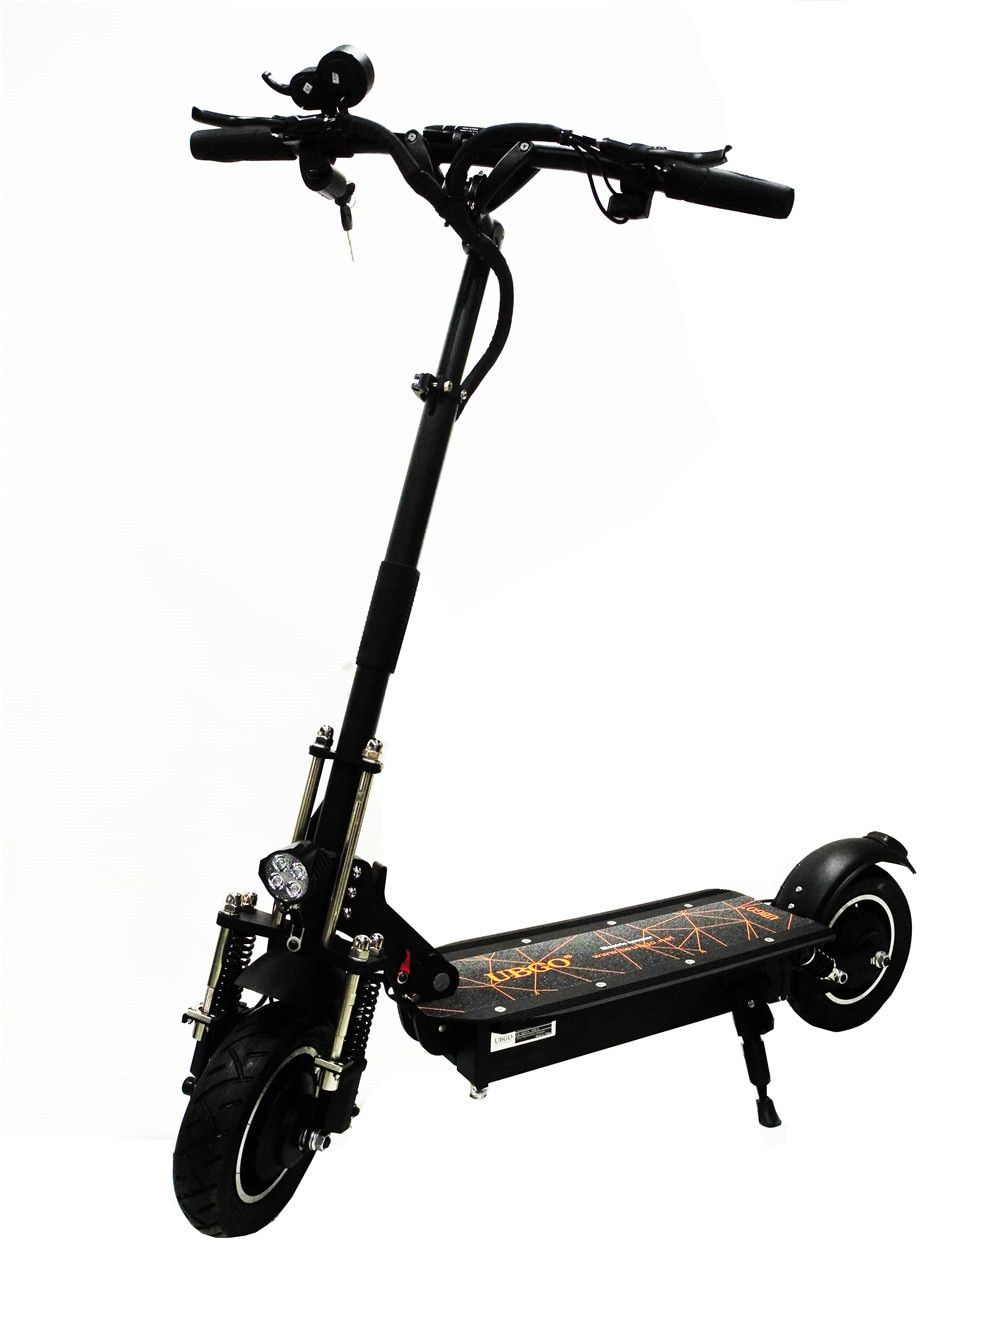 UBGO 1005+ 60V/52V Double Drive Gapless handle bar 2000W motor powerful electric scooter